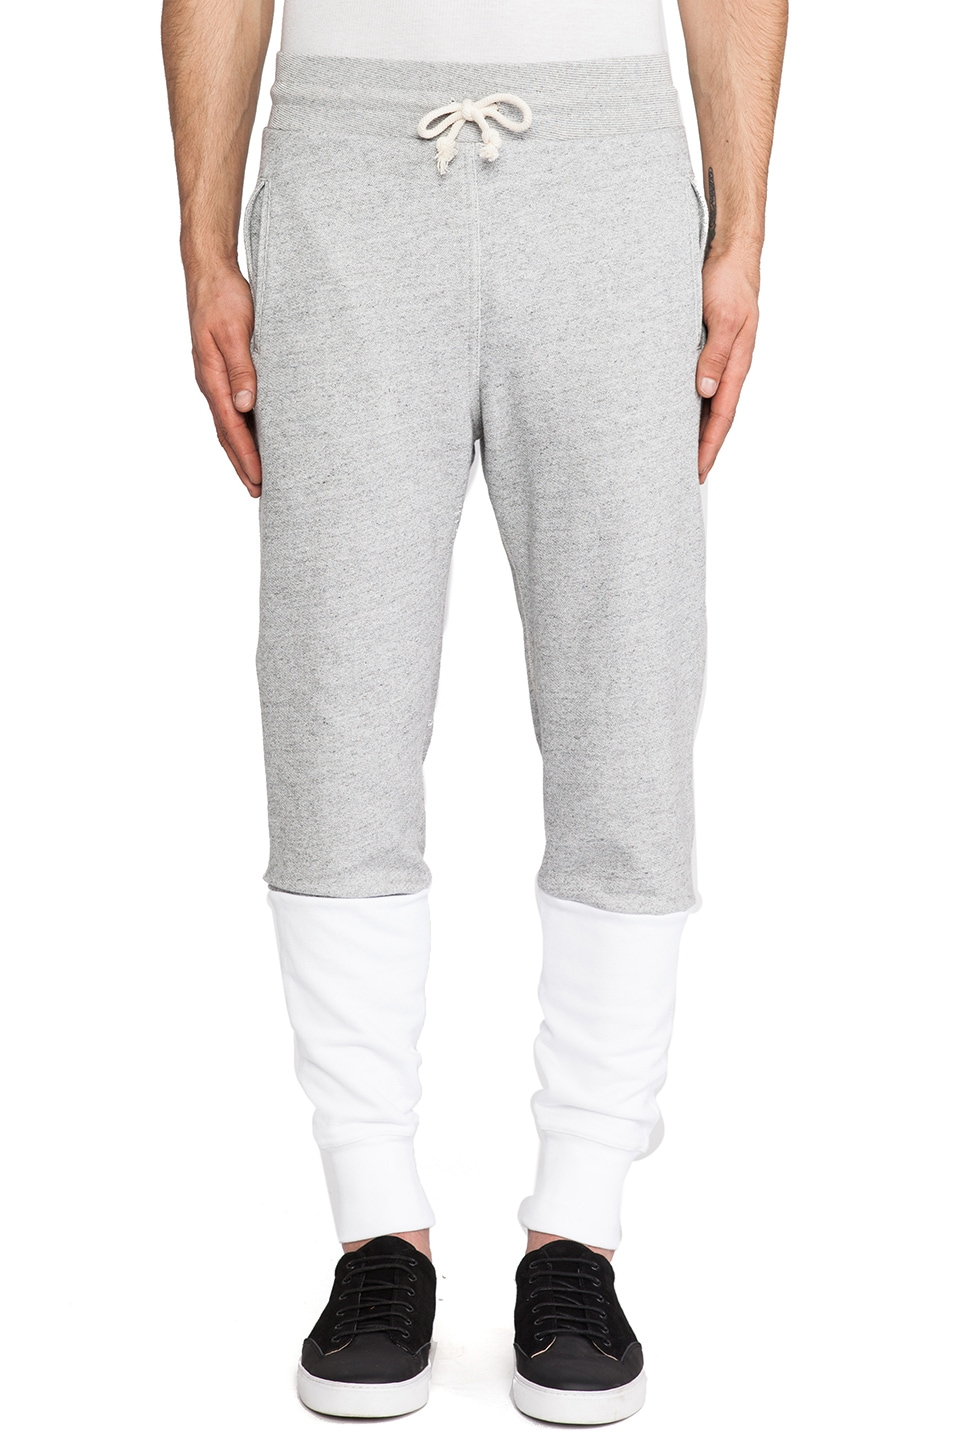 JOHN ELLIOTT Lima Sweatpant in Duo Grey